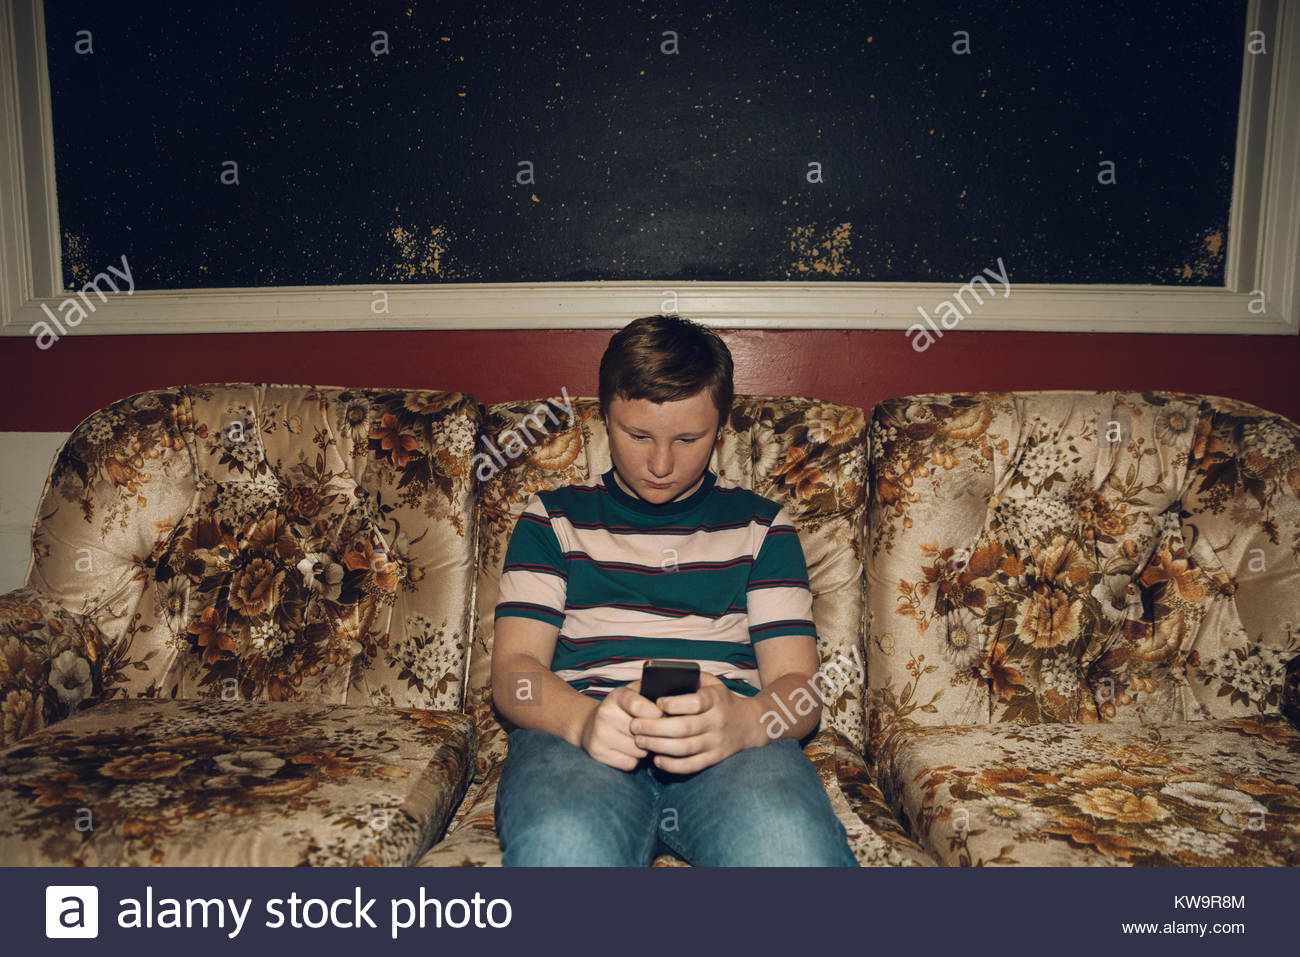 Caucasian Tween Boy Texting With Smart Phone On Old Floral Sofa